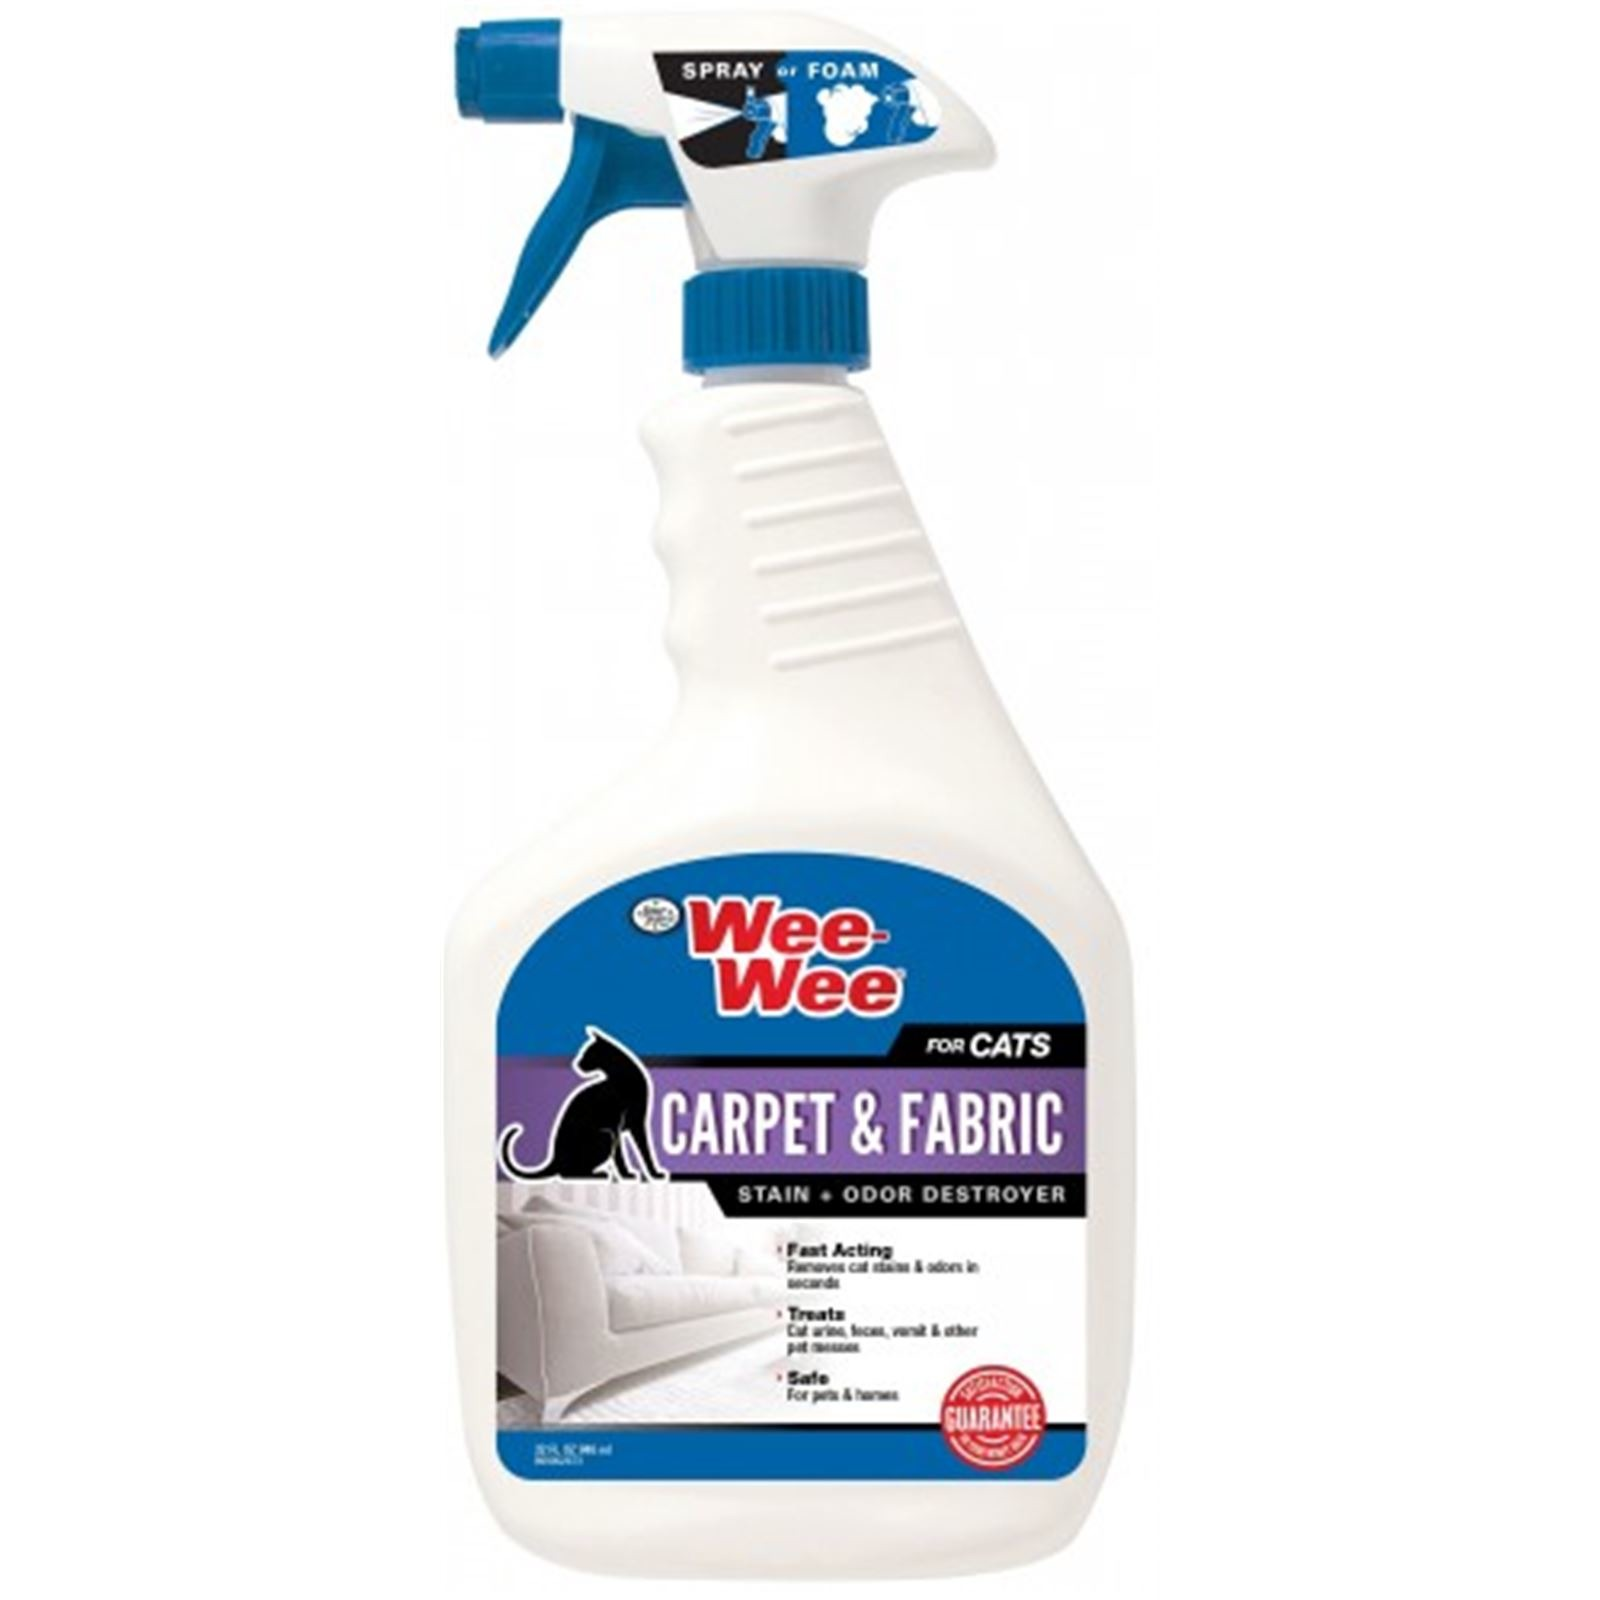 Four Paws CAT Carpet & Fab Stain & Odor Destroyer